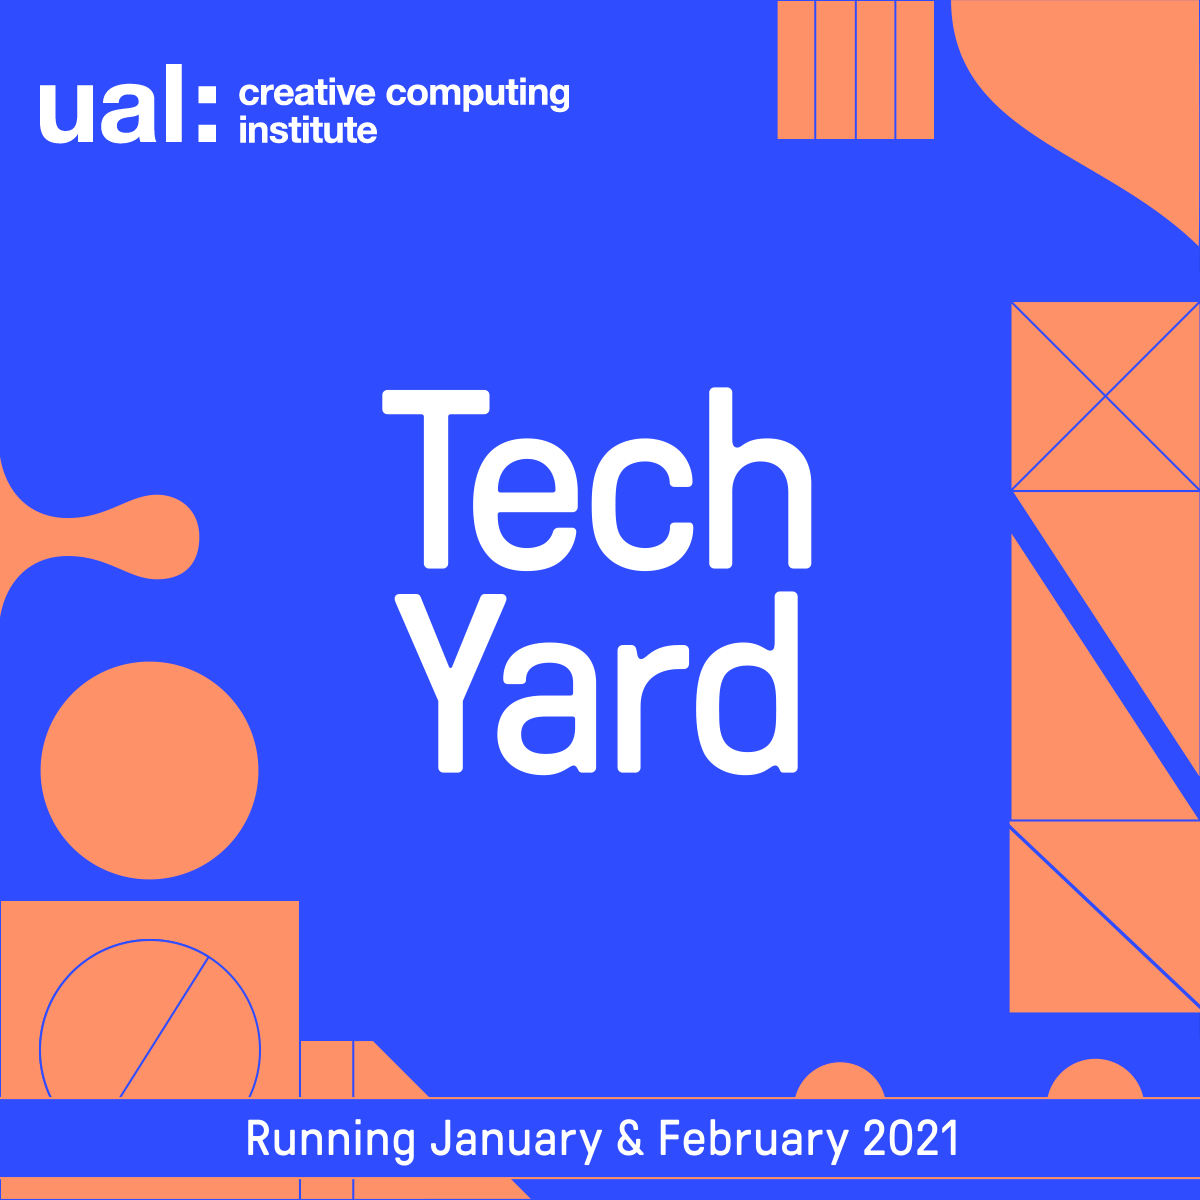 Square branded graphic with the wording Tech Garage in white text on a blue and orange background and the UAL CCI logo